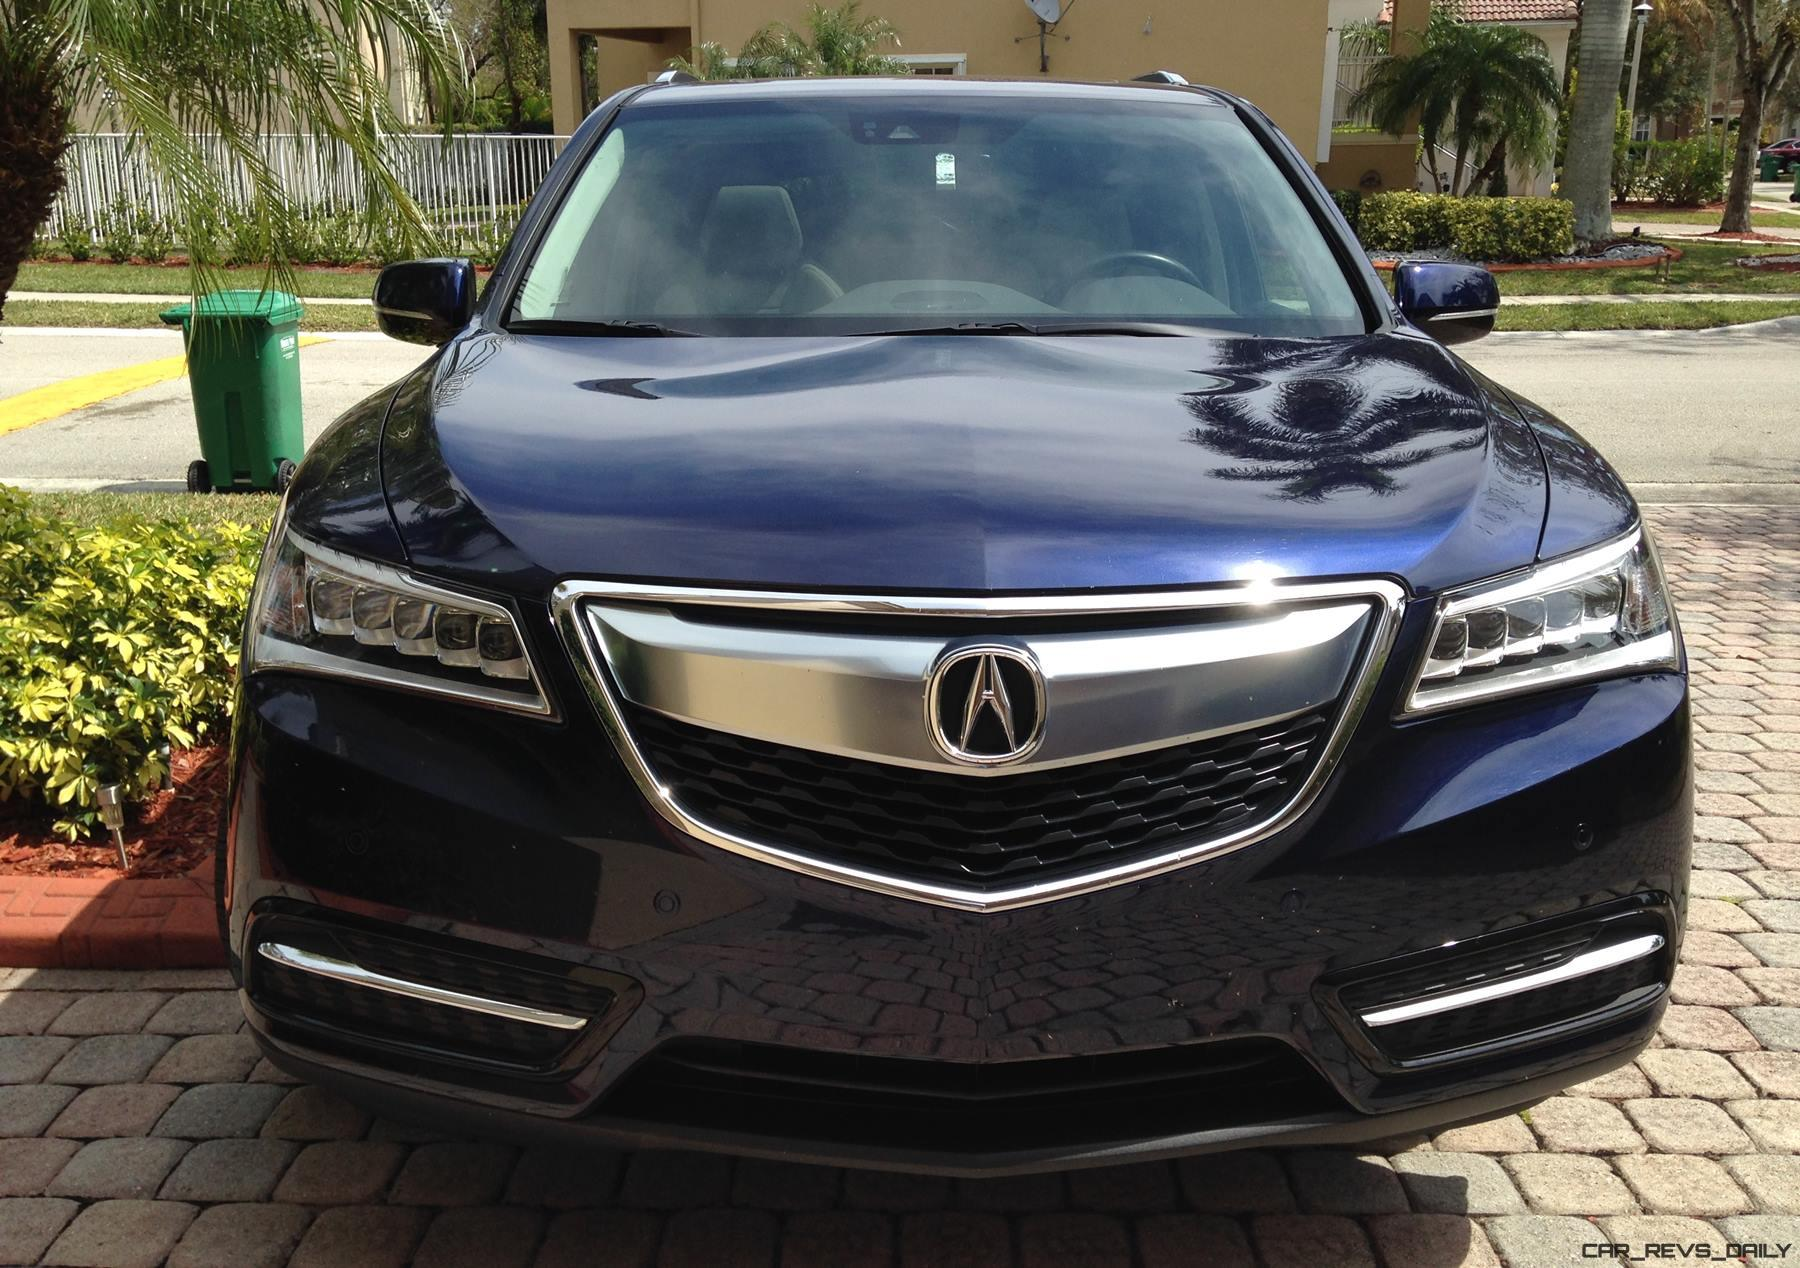 signature img received autoreviewers auto acura review for changes upgrades grille it reviewers mdx com retained and major drive flash but the